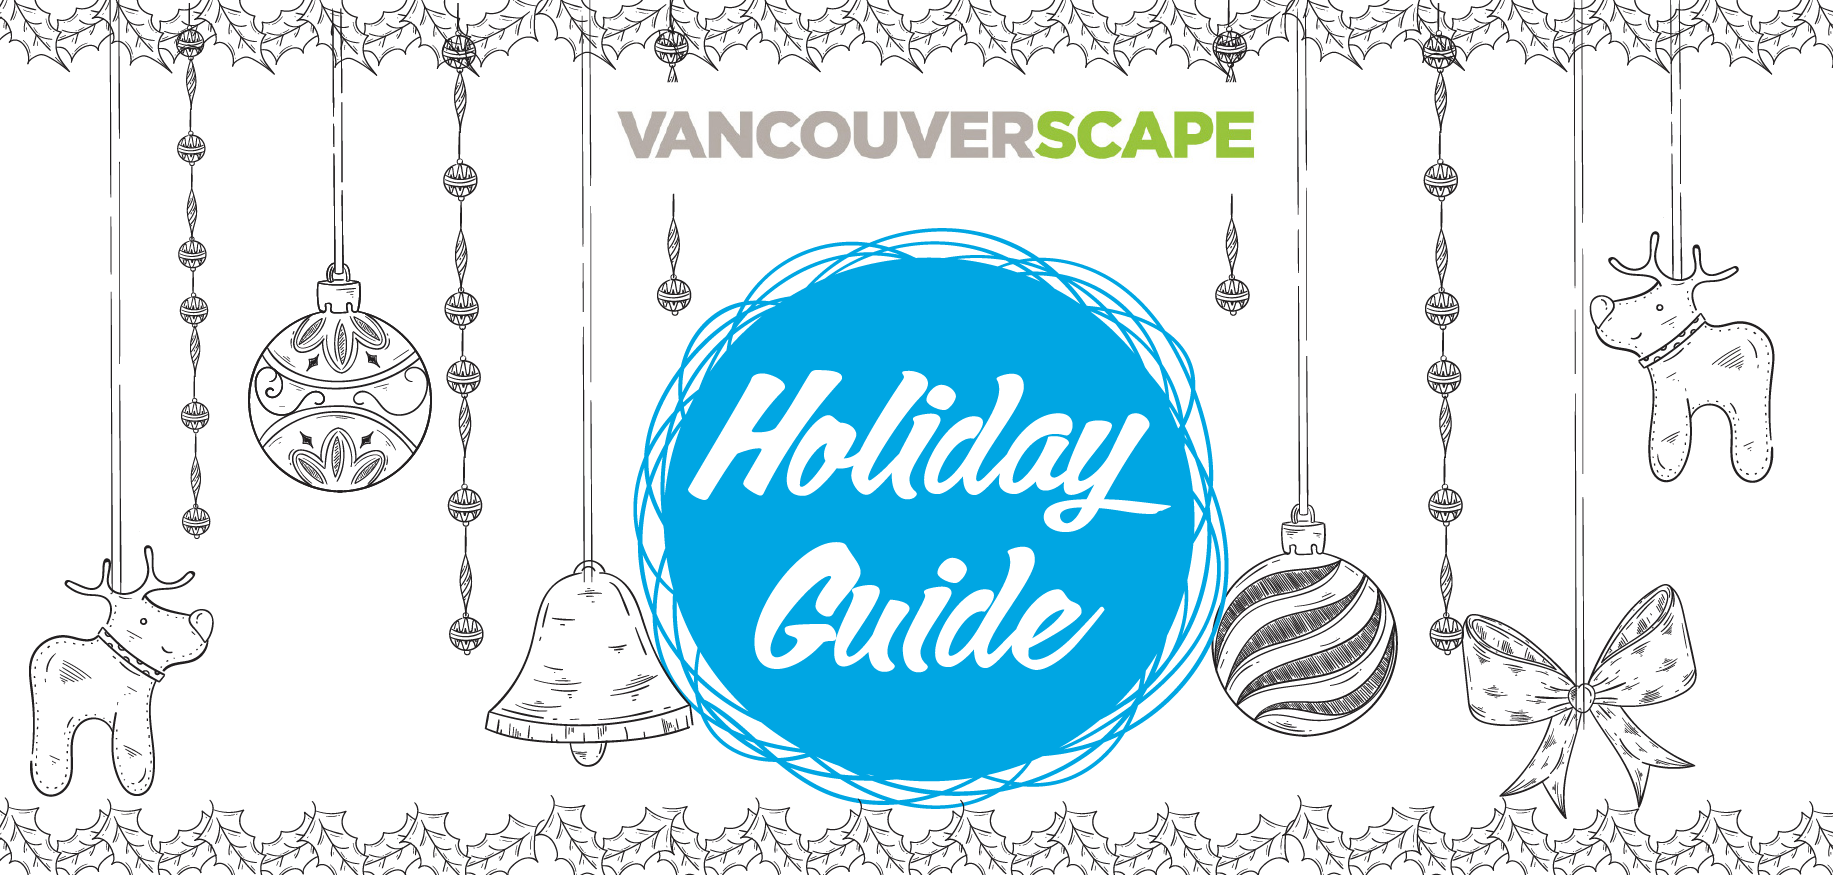 Vancouverscape — 2016 LOGIIX HOLIDAY GUIDE